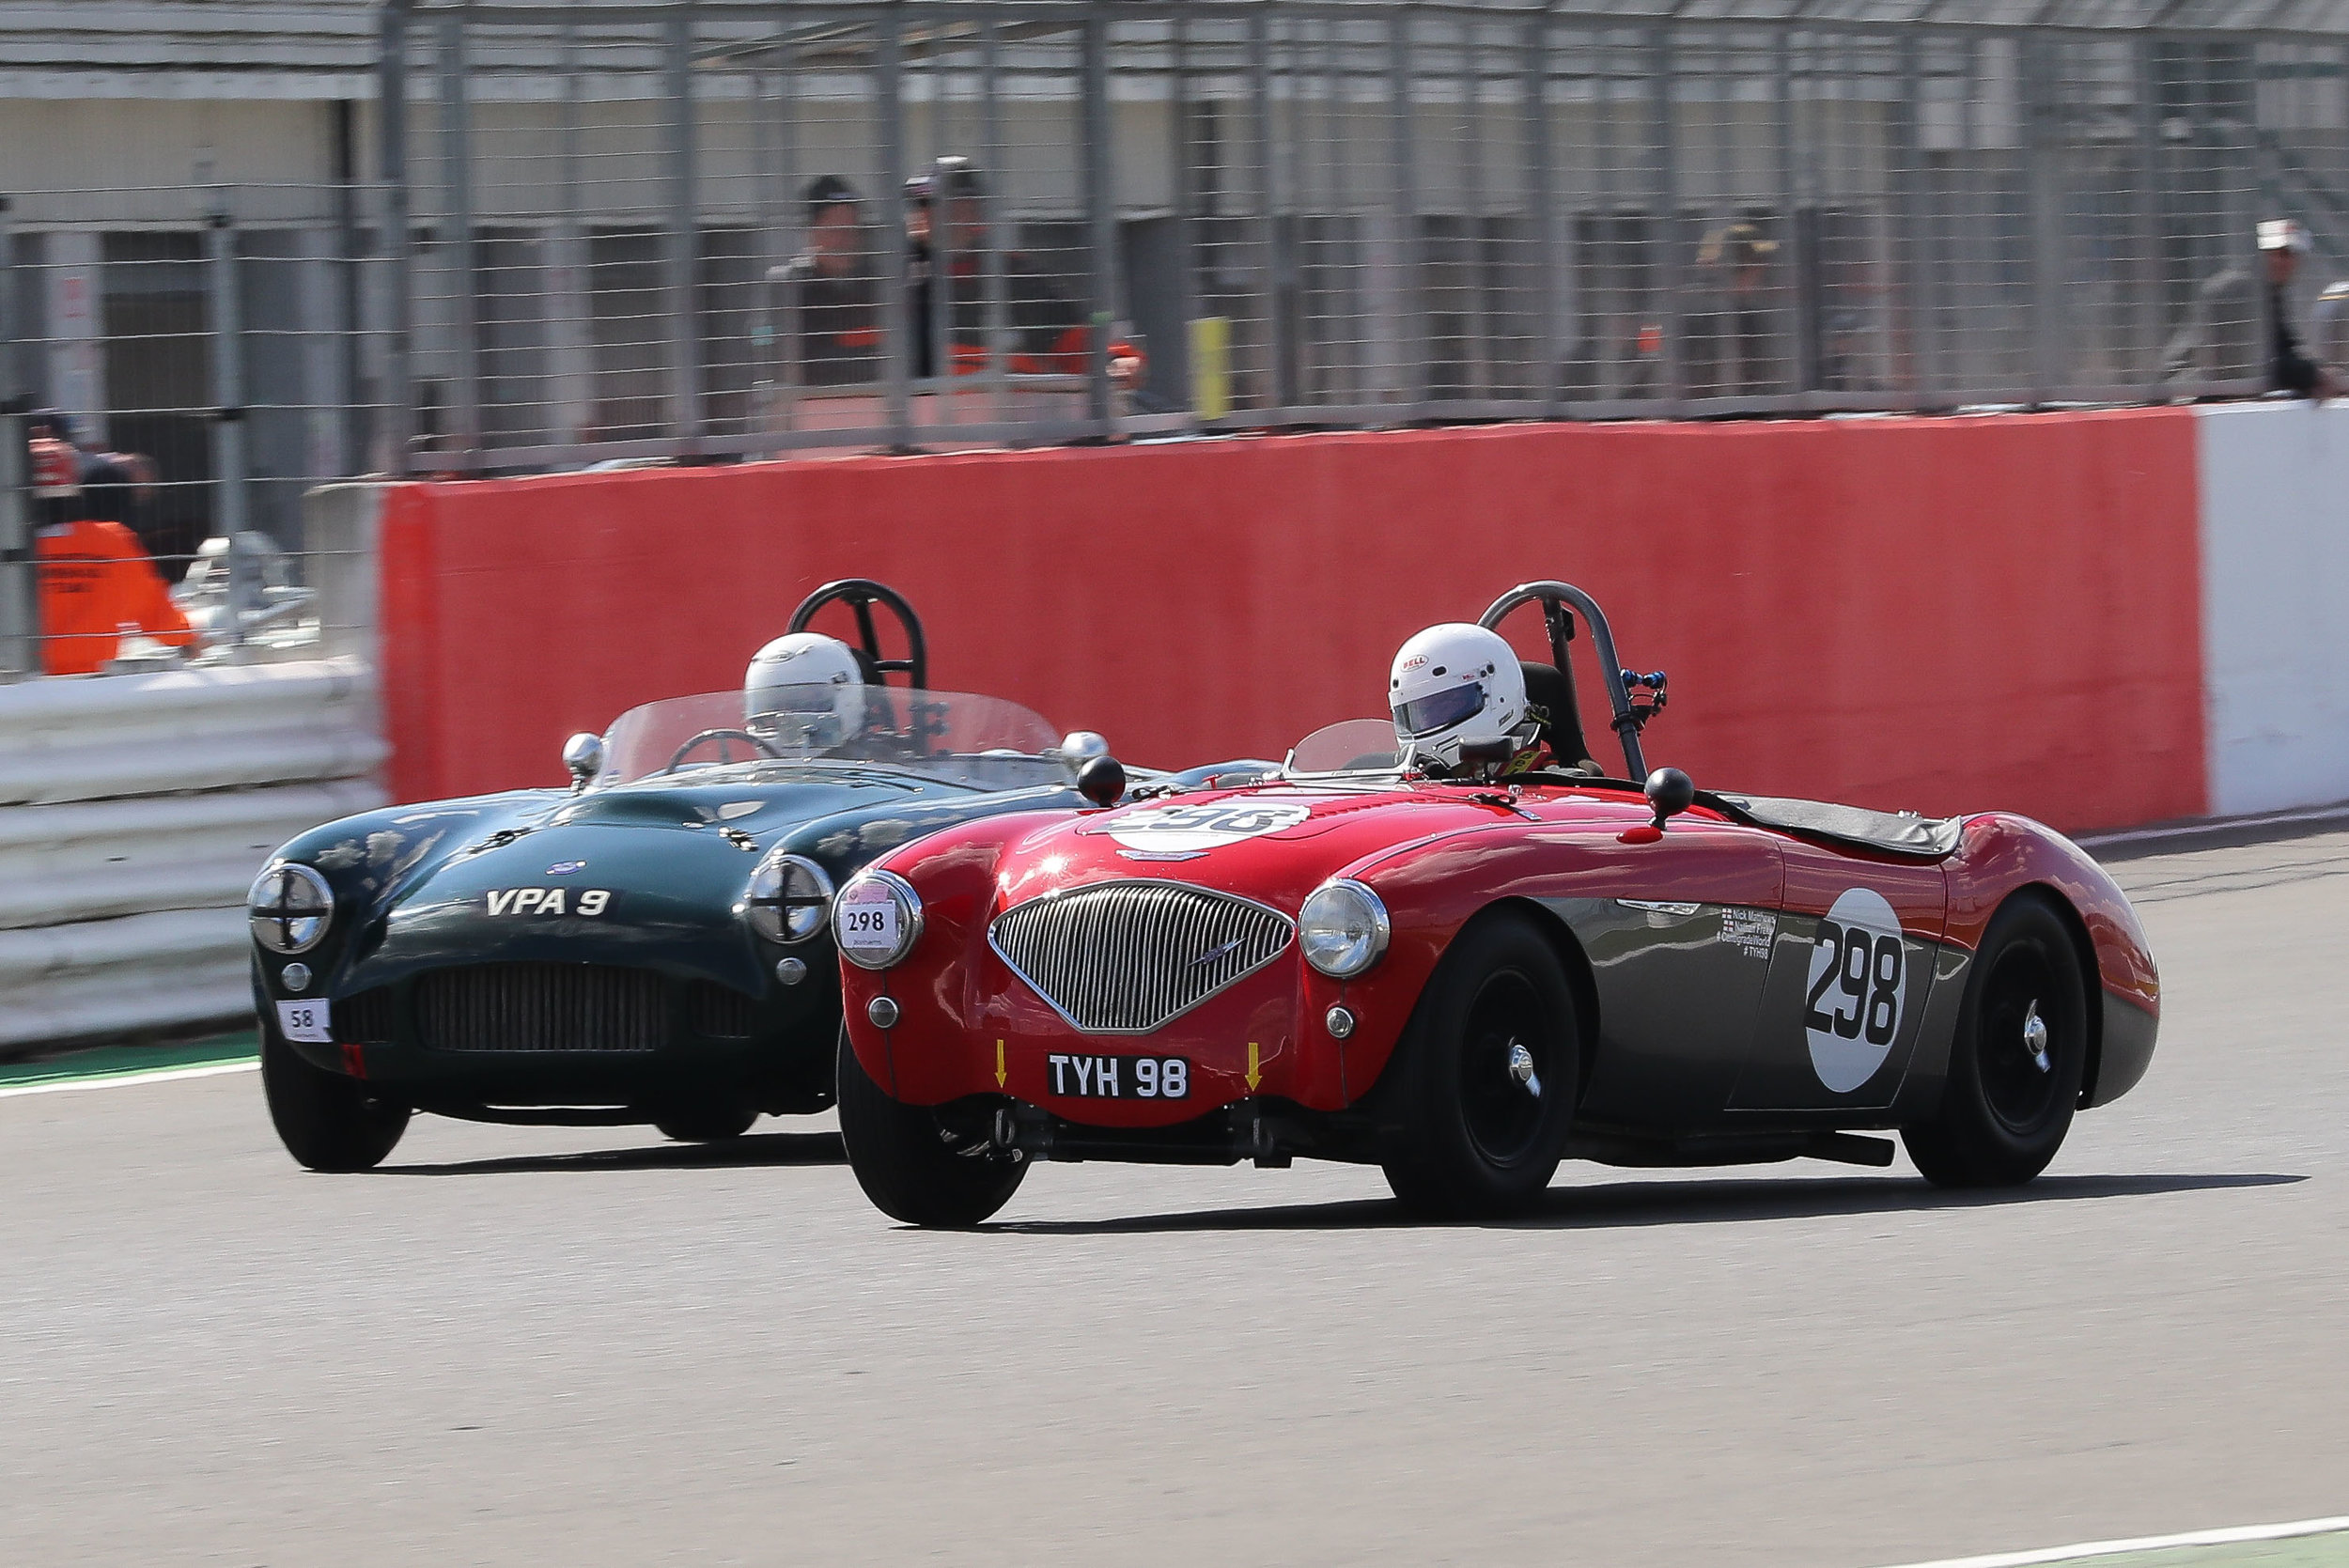 Nick Matthews, always highly competitive, led the Austin Healey charge for the early laps. Here he is being passed by the recovering HWM of Martin Hunt.                                                                                                                                  Photo - Richard Styles